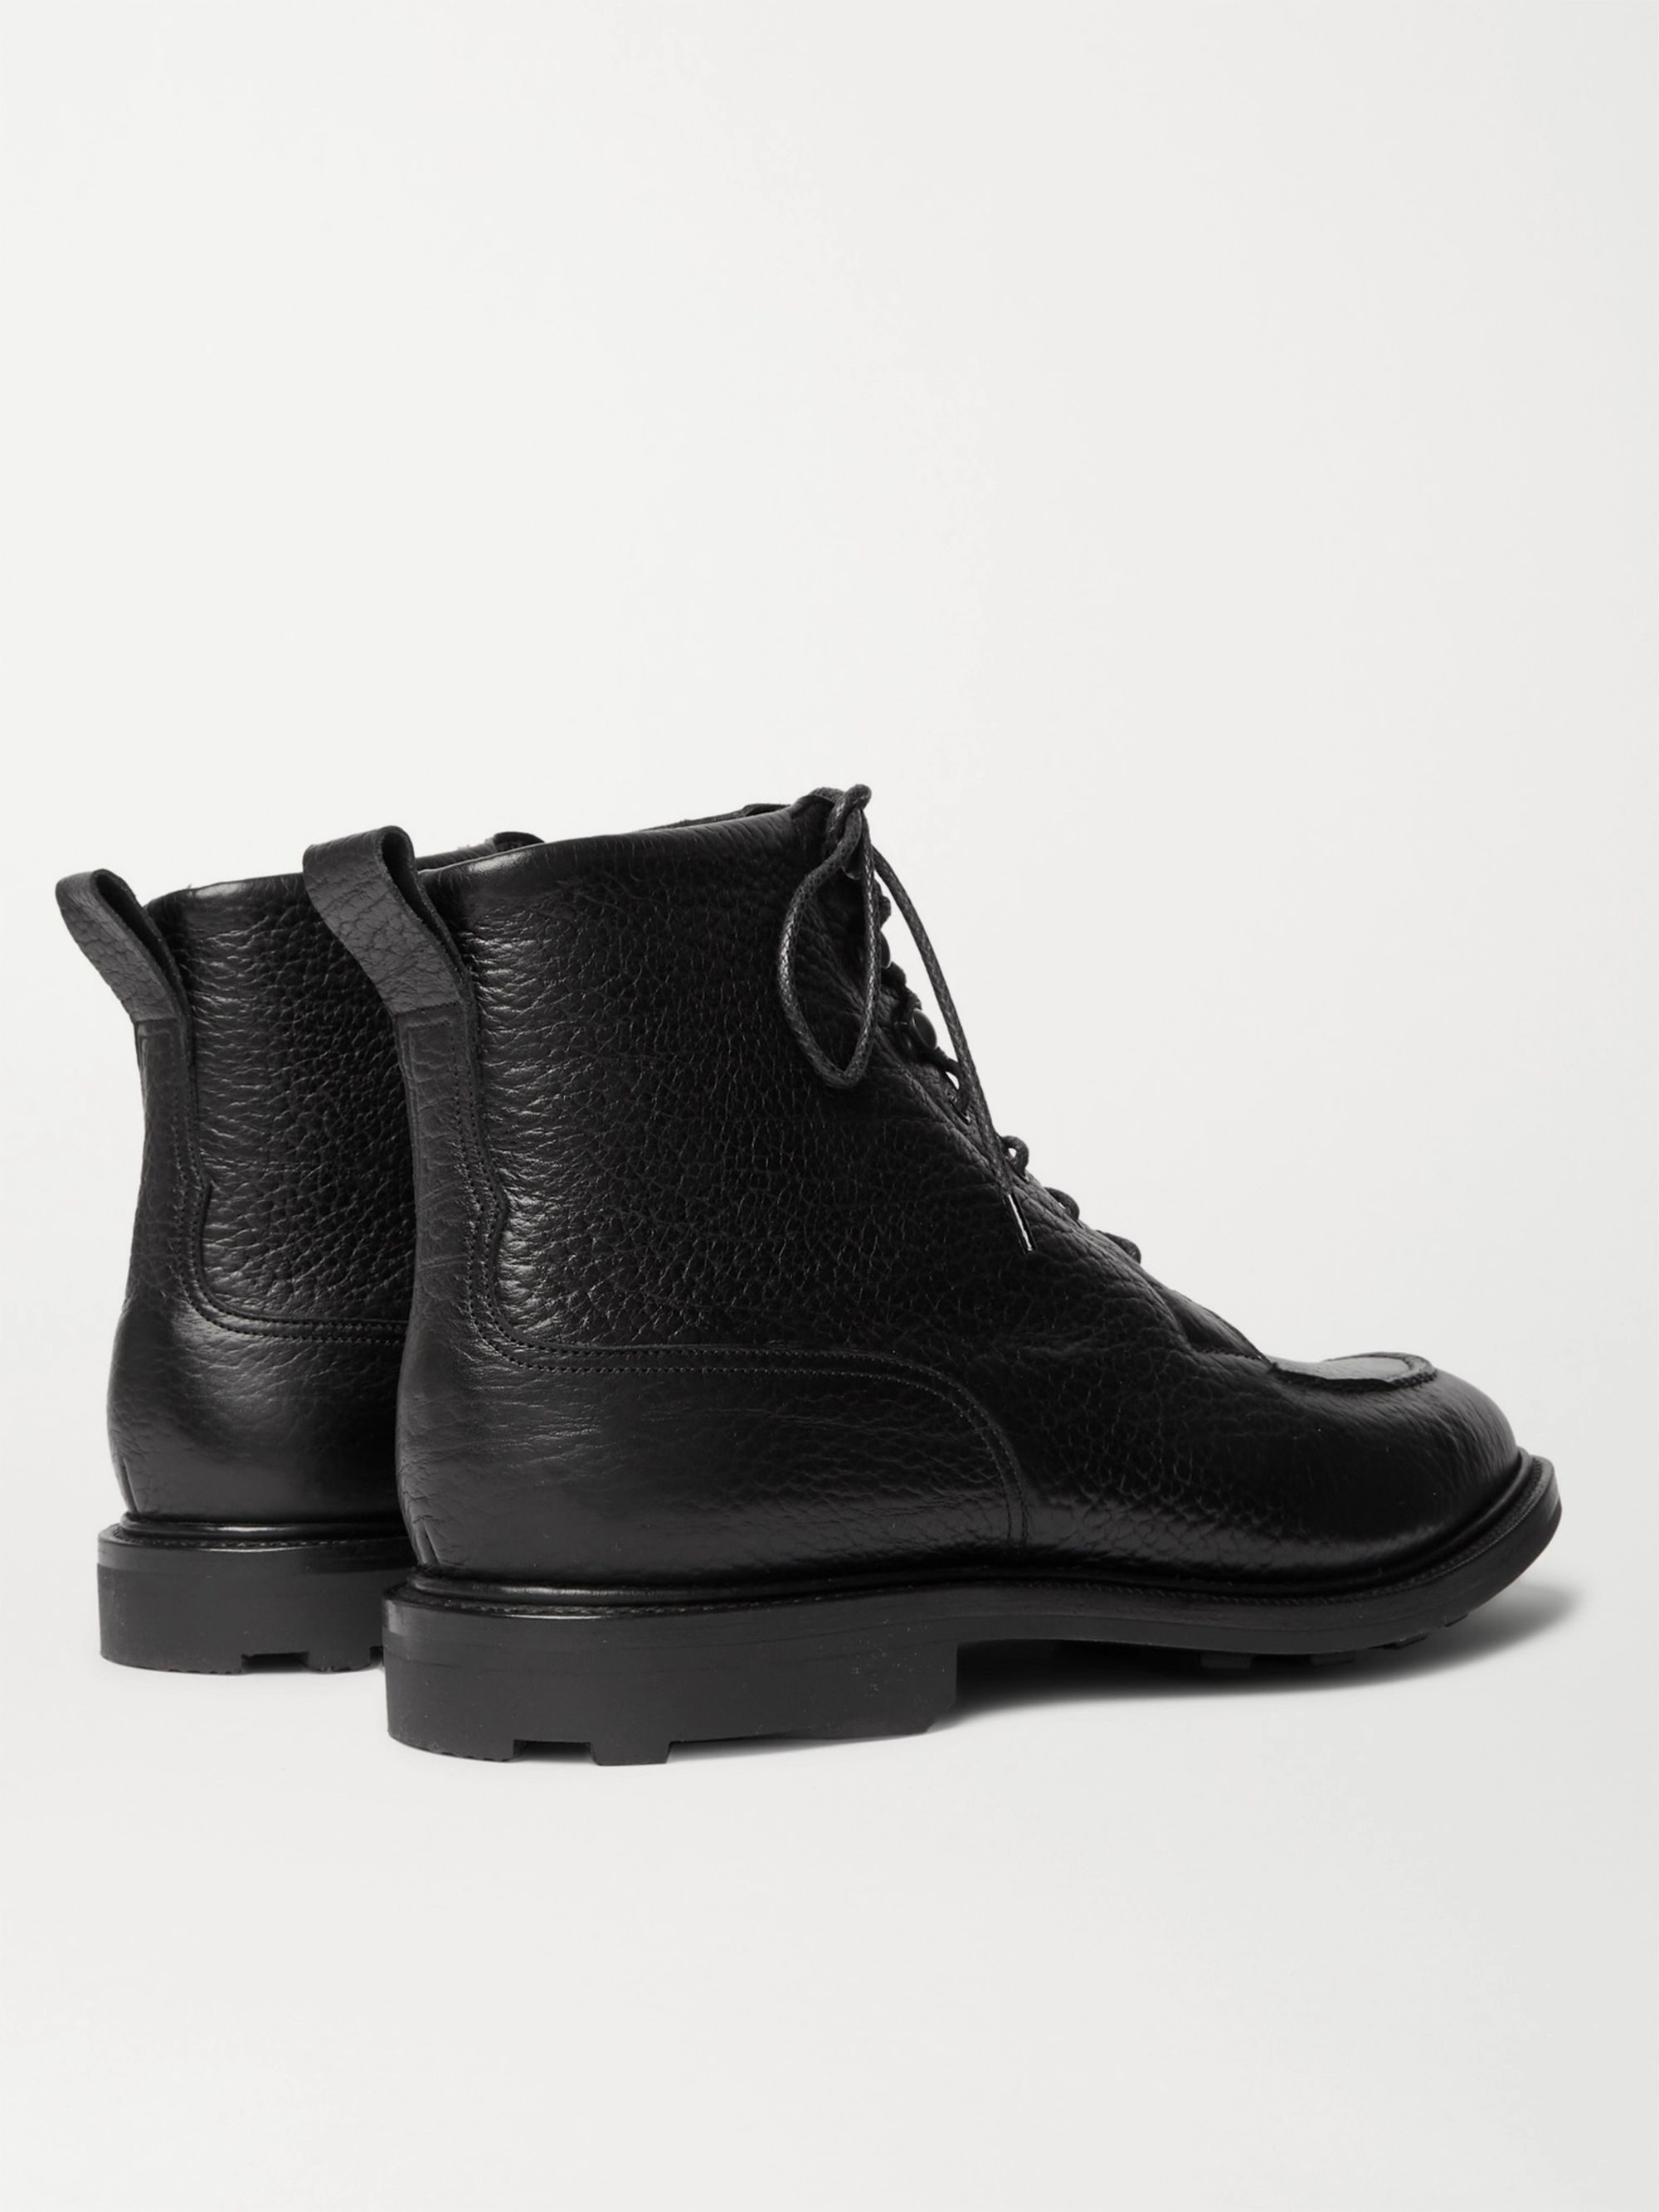 Edward Green Cranleigh Shearling-Lined Suede Boots